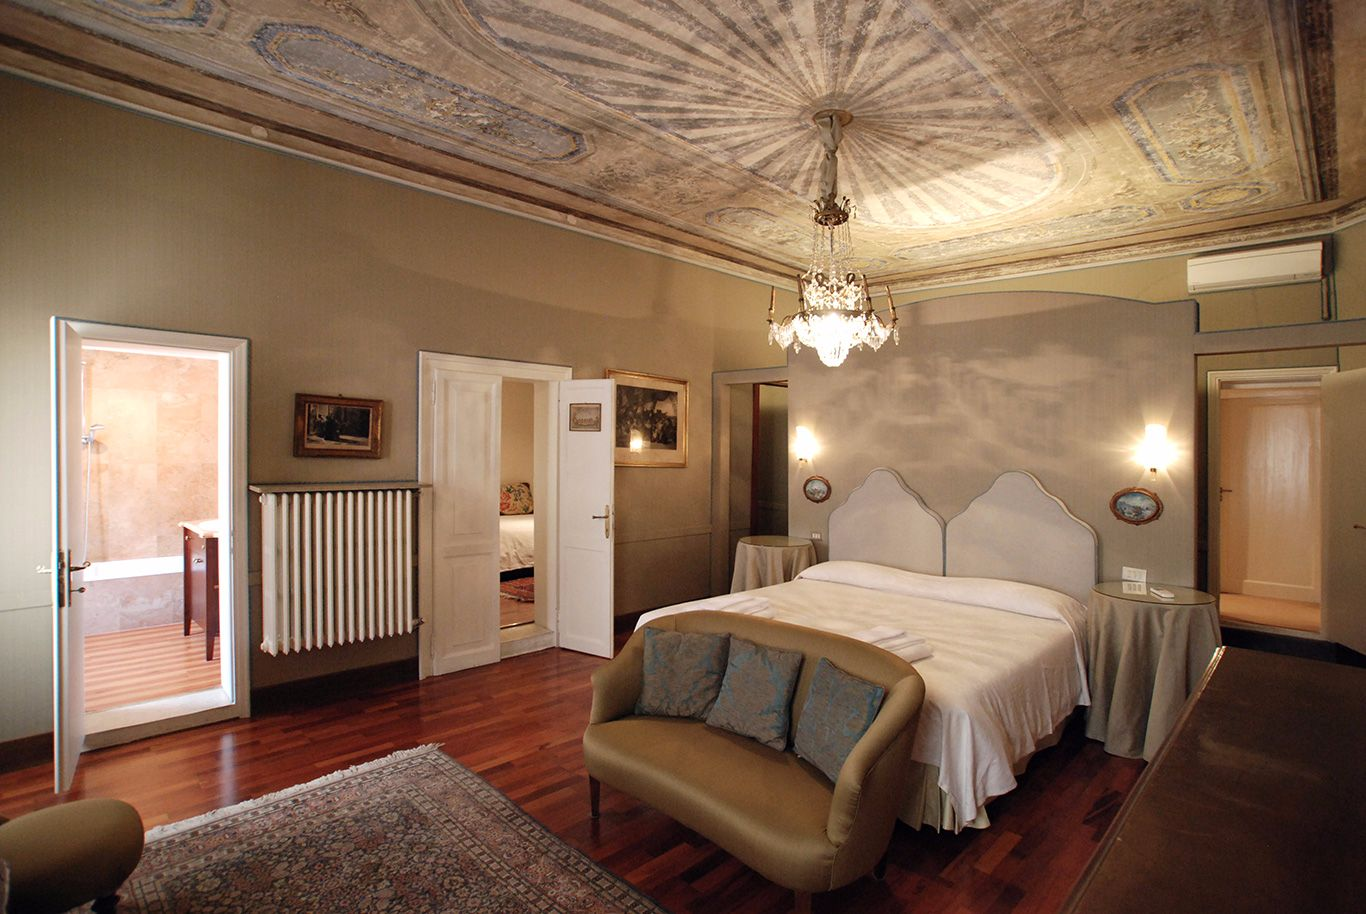 the beautiful master bedroom with frescoed ceiling and en-suite bathroom